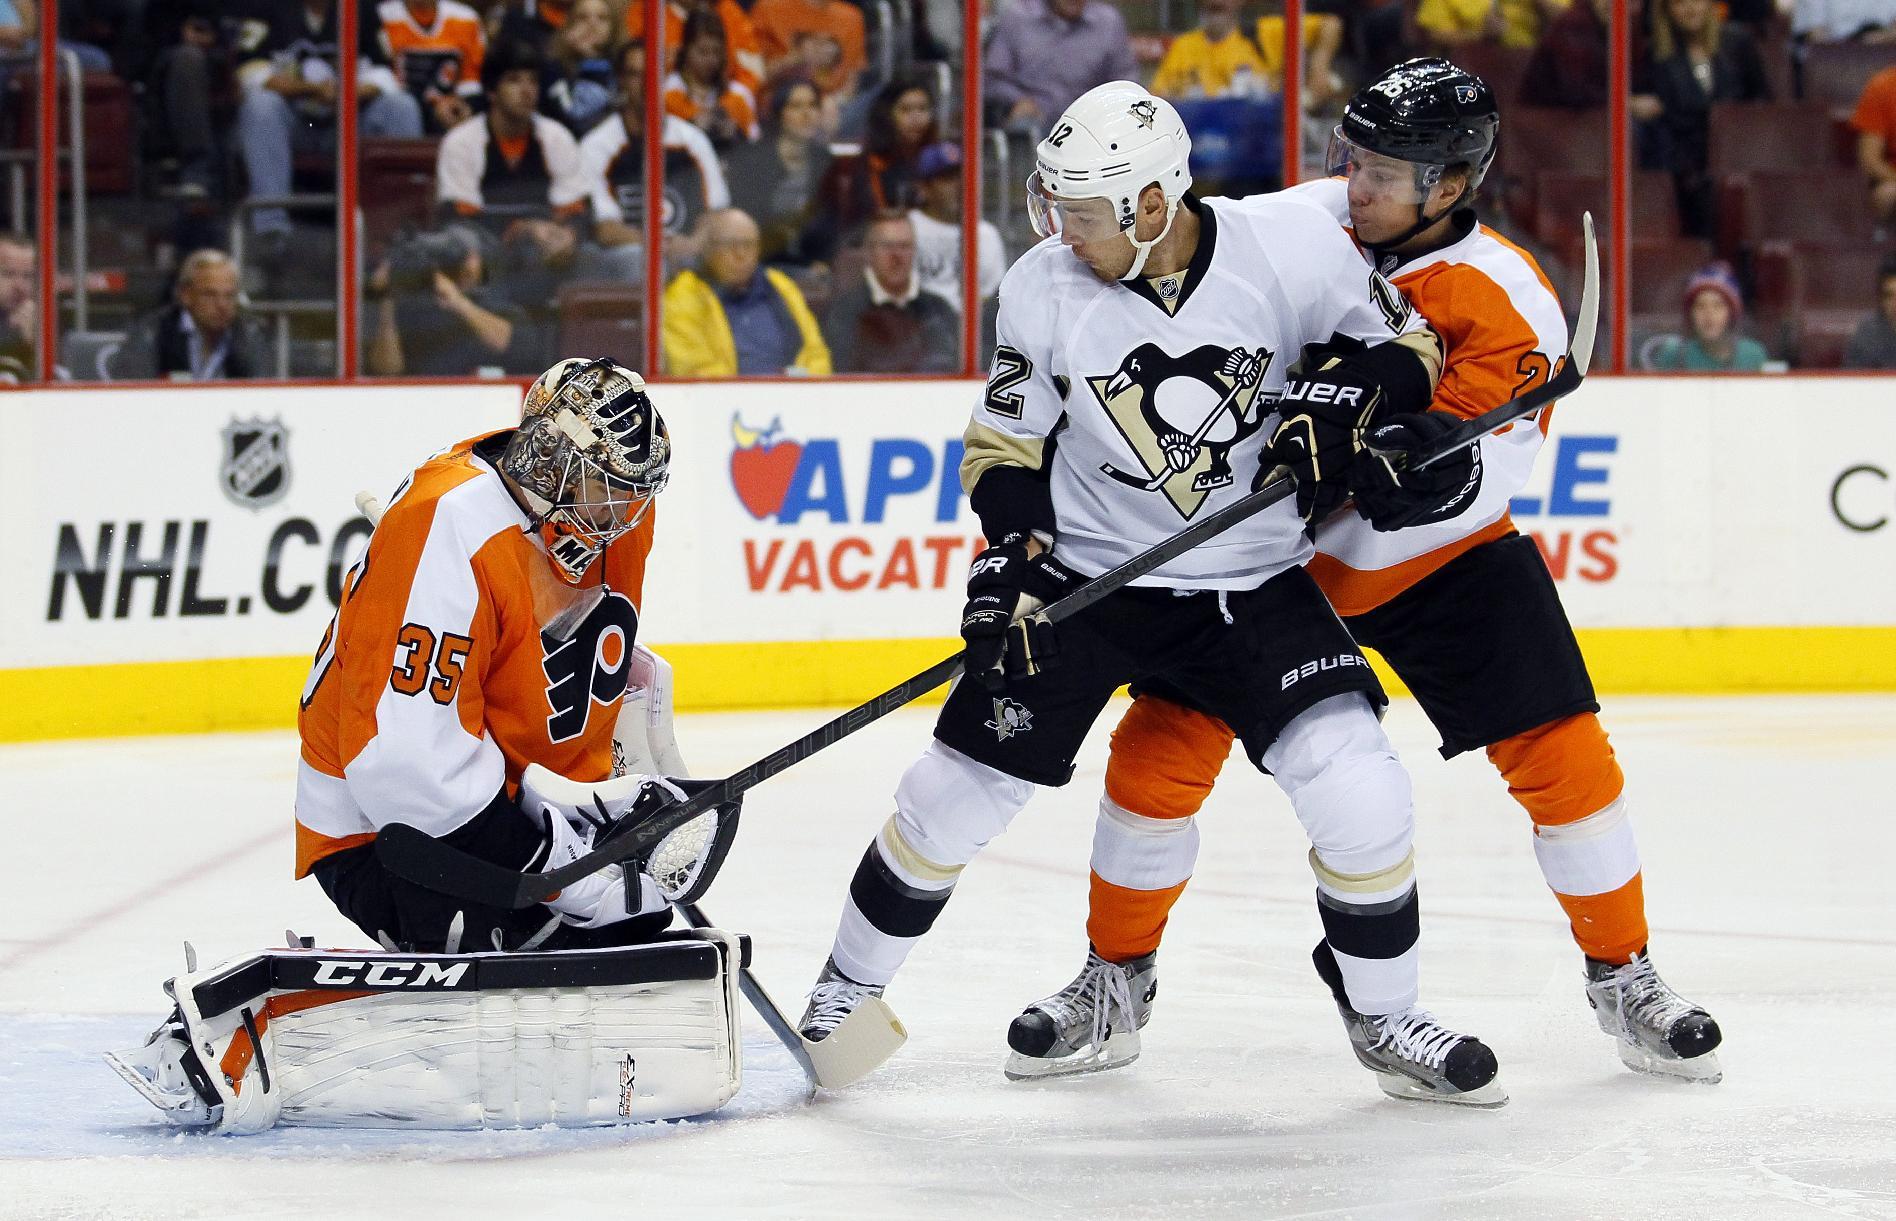 Philadelphia Flyers goalie Steve Mason, left, holds on to the puck as Pittsburgh Penguins' Chuck Kobasew, center, and Flyers' Claude Giroux, right, watch in the first period of an NHL hockey game, Thursday, Oct. 17, 2013, in Philadelphia